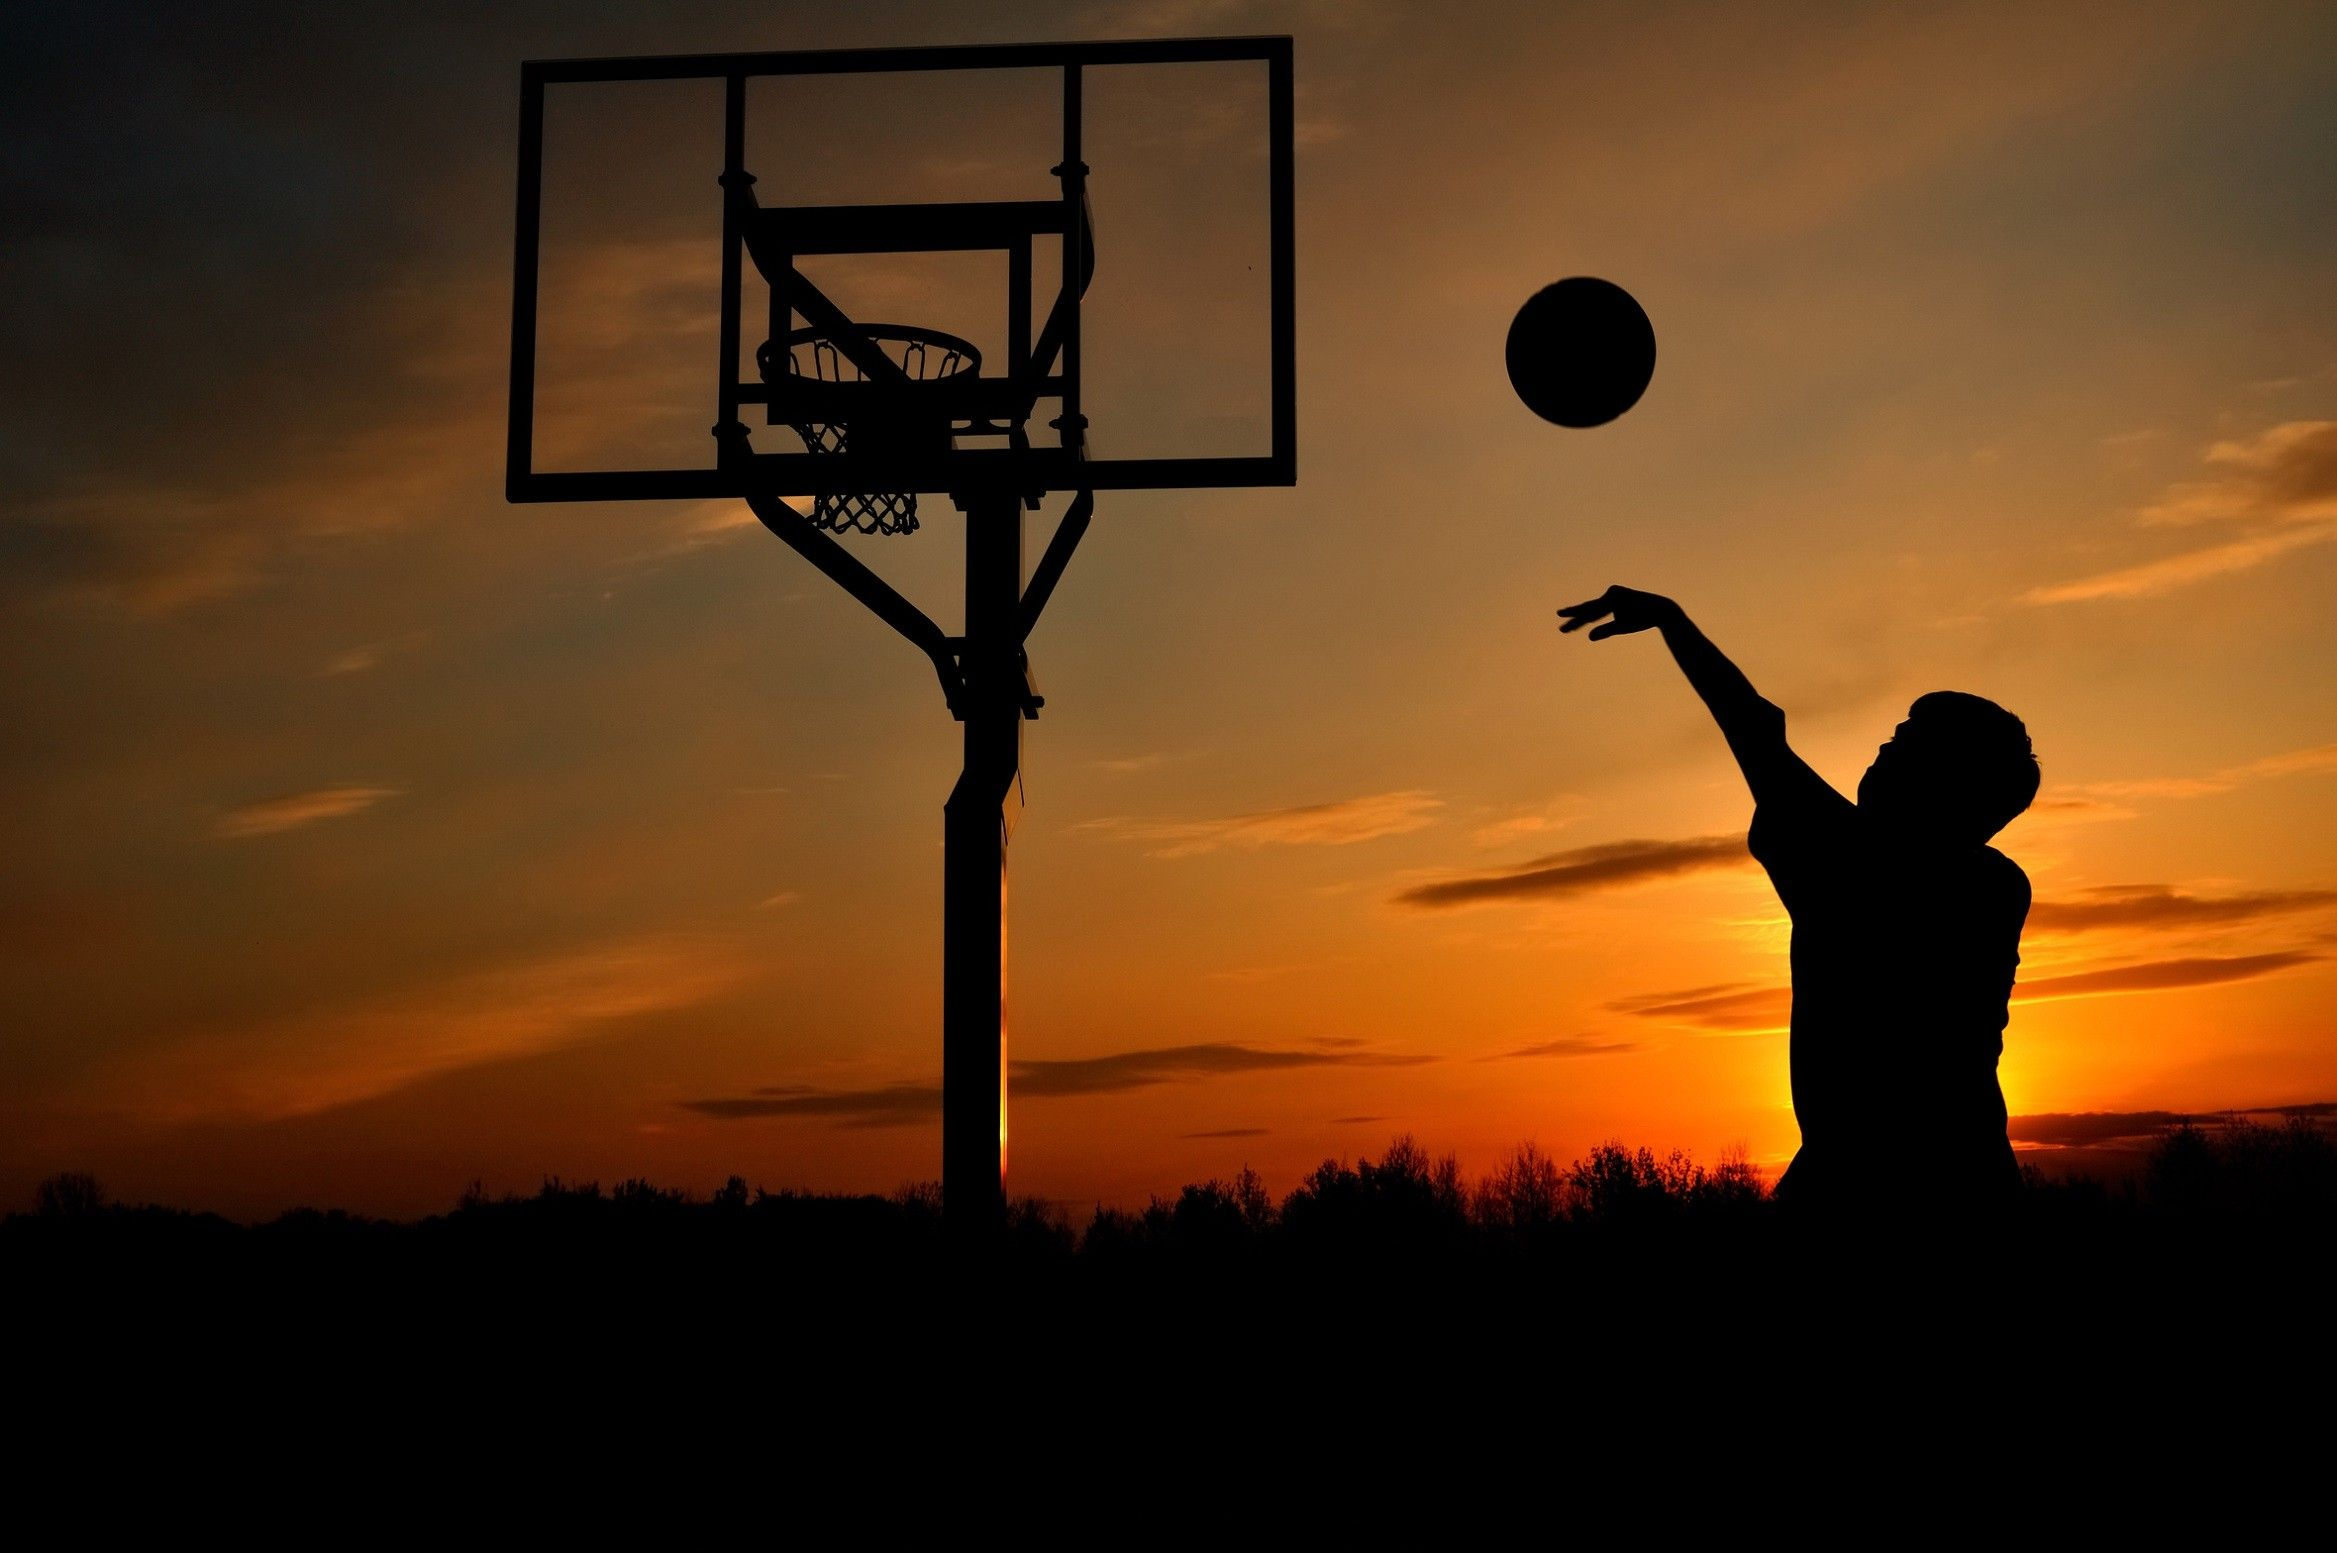 Boy And Girl Wallpaper With Quotes Basketball Wallpaper 14 2337x1553